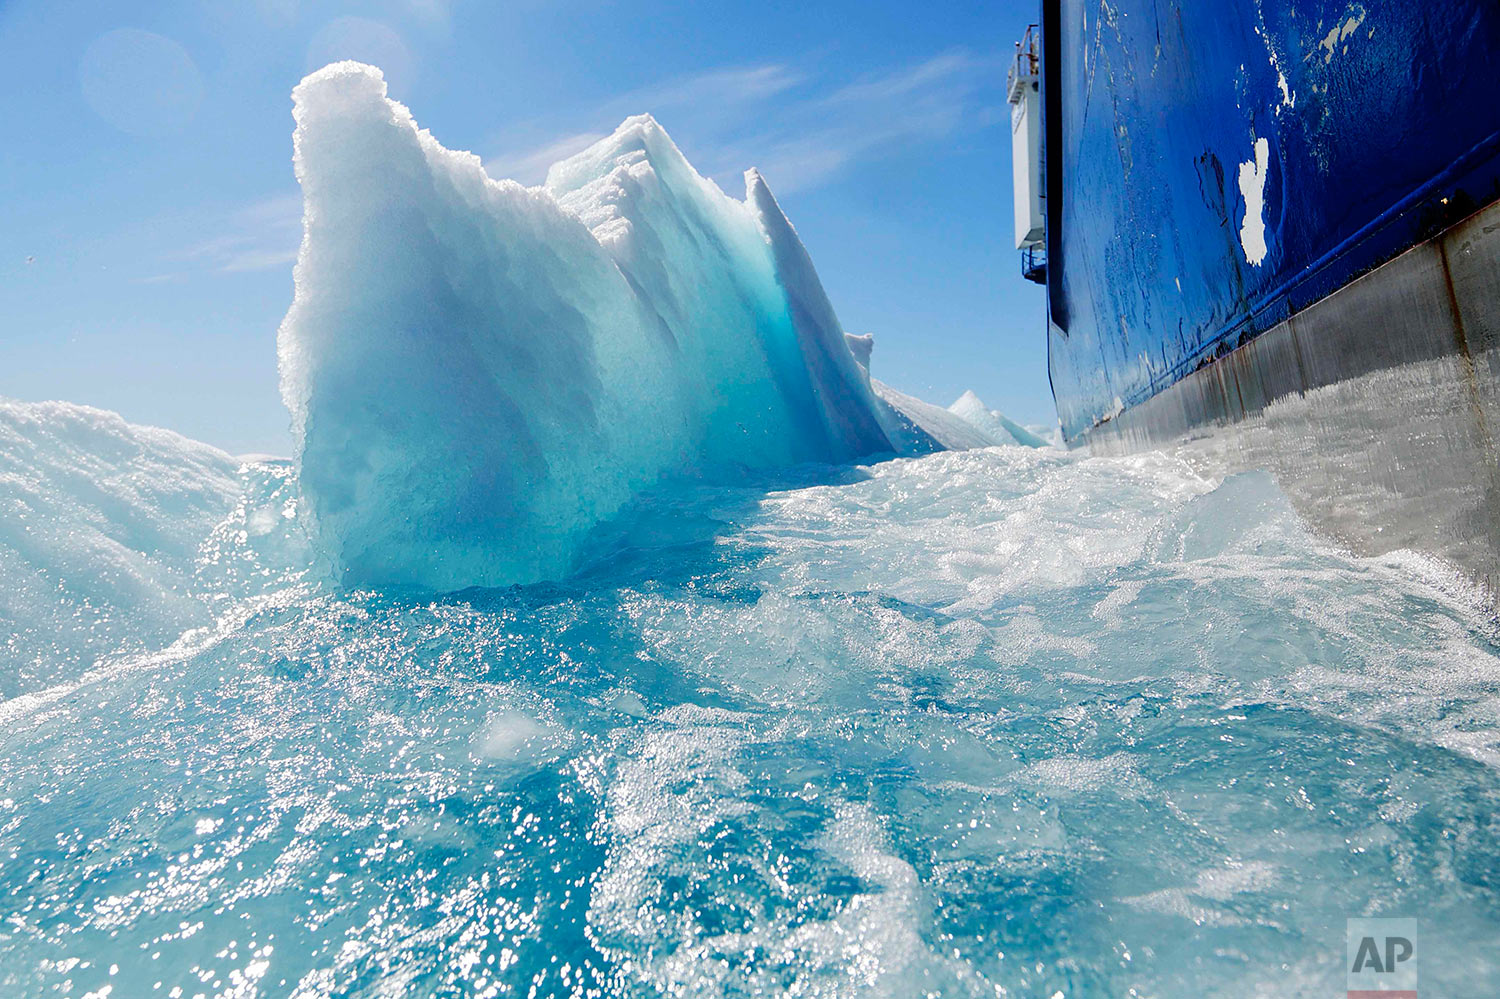 Broken sea ice emerges from under the hull of the Finnish icebreaker MSV Nordica as it sails through the Victoria Strait while traversing the Arctic's Northwest Passage, Friday, July 21, 2017. (AP Photo/David Goldman)